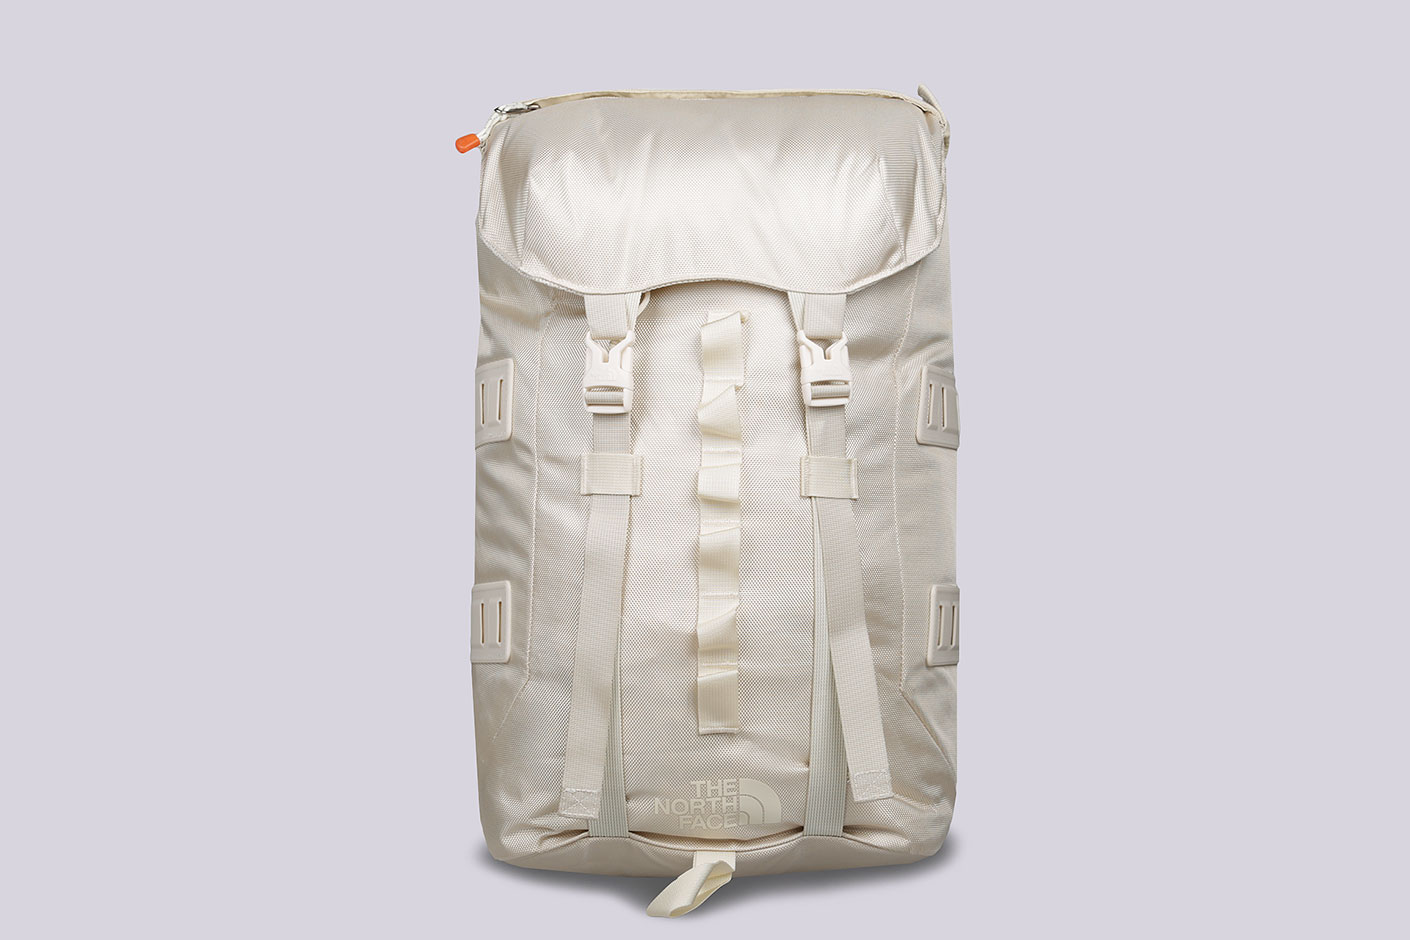 бежевый рюкзак The North Face Lineage Ruck 37L